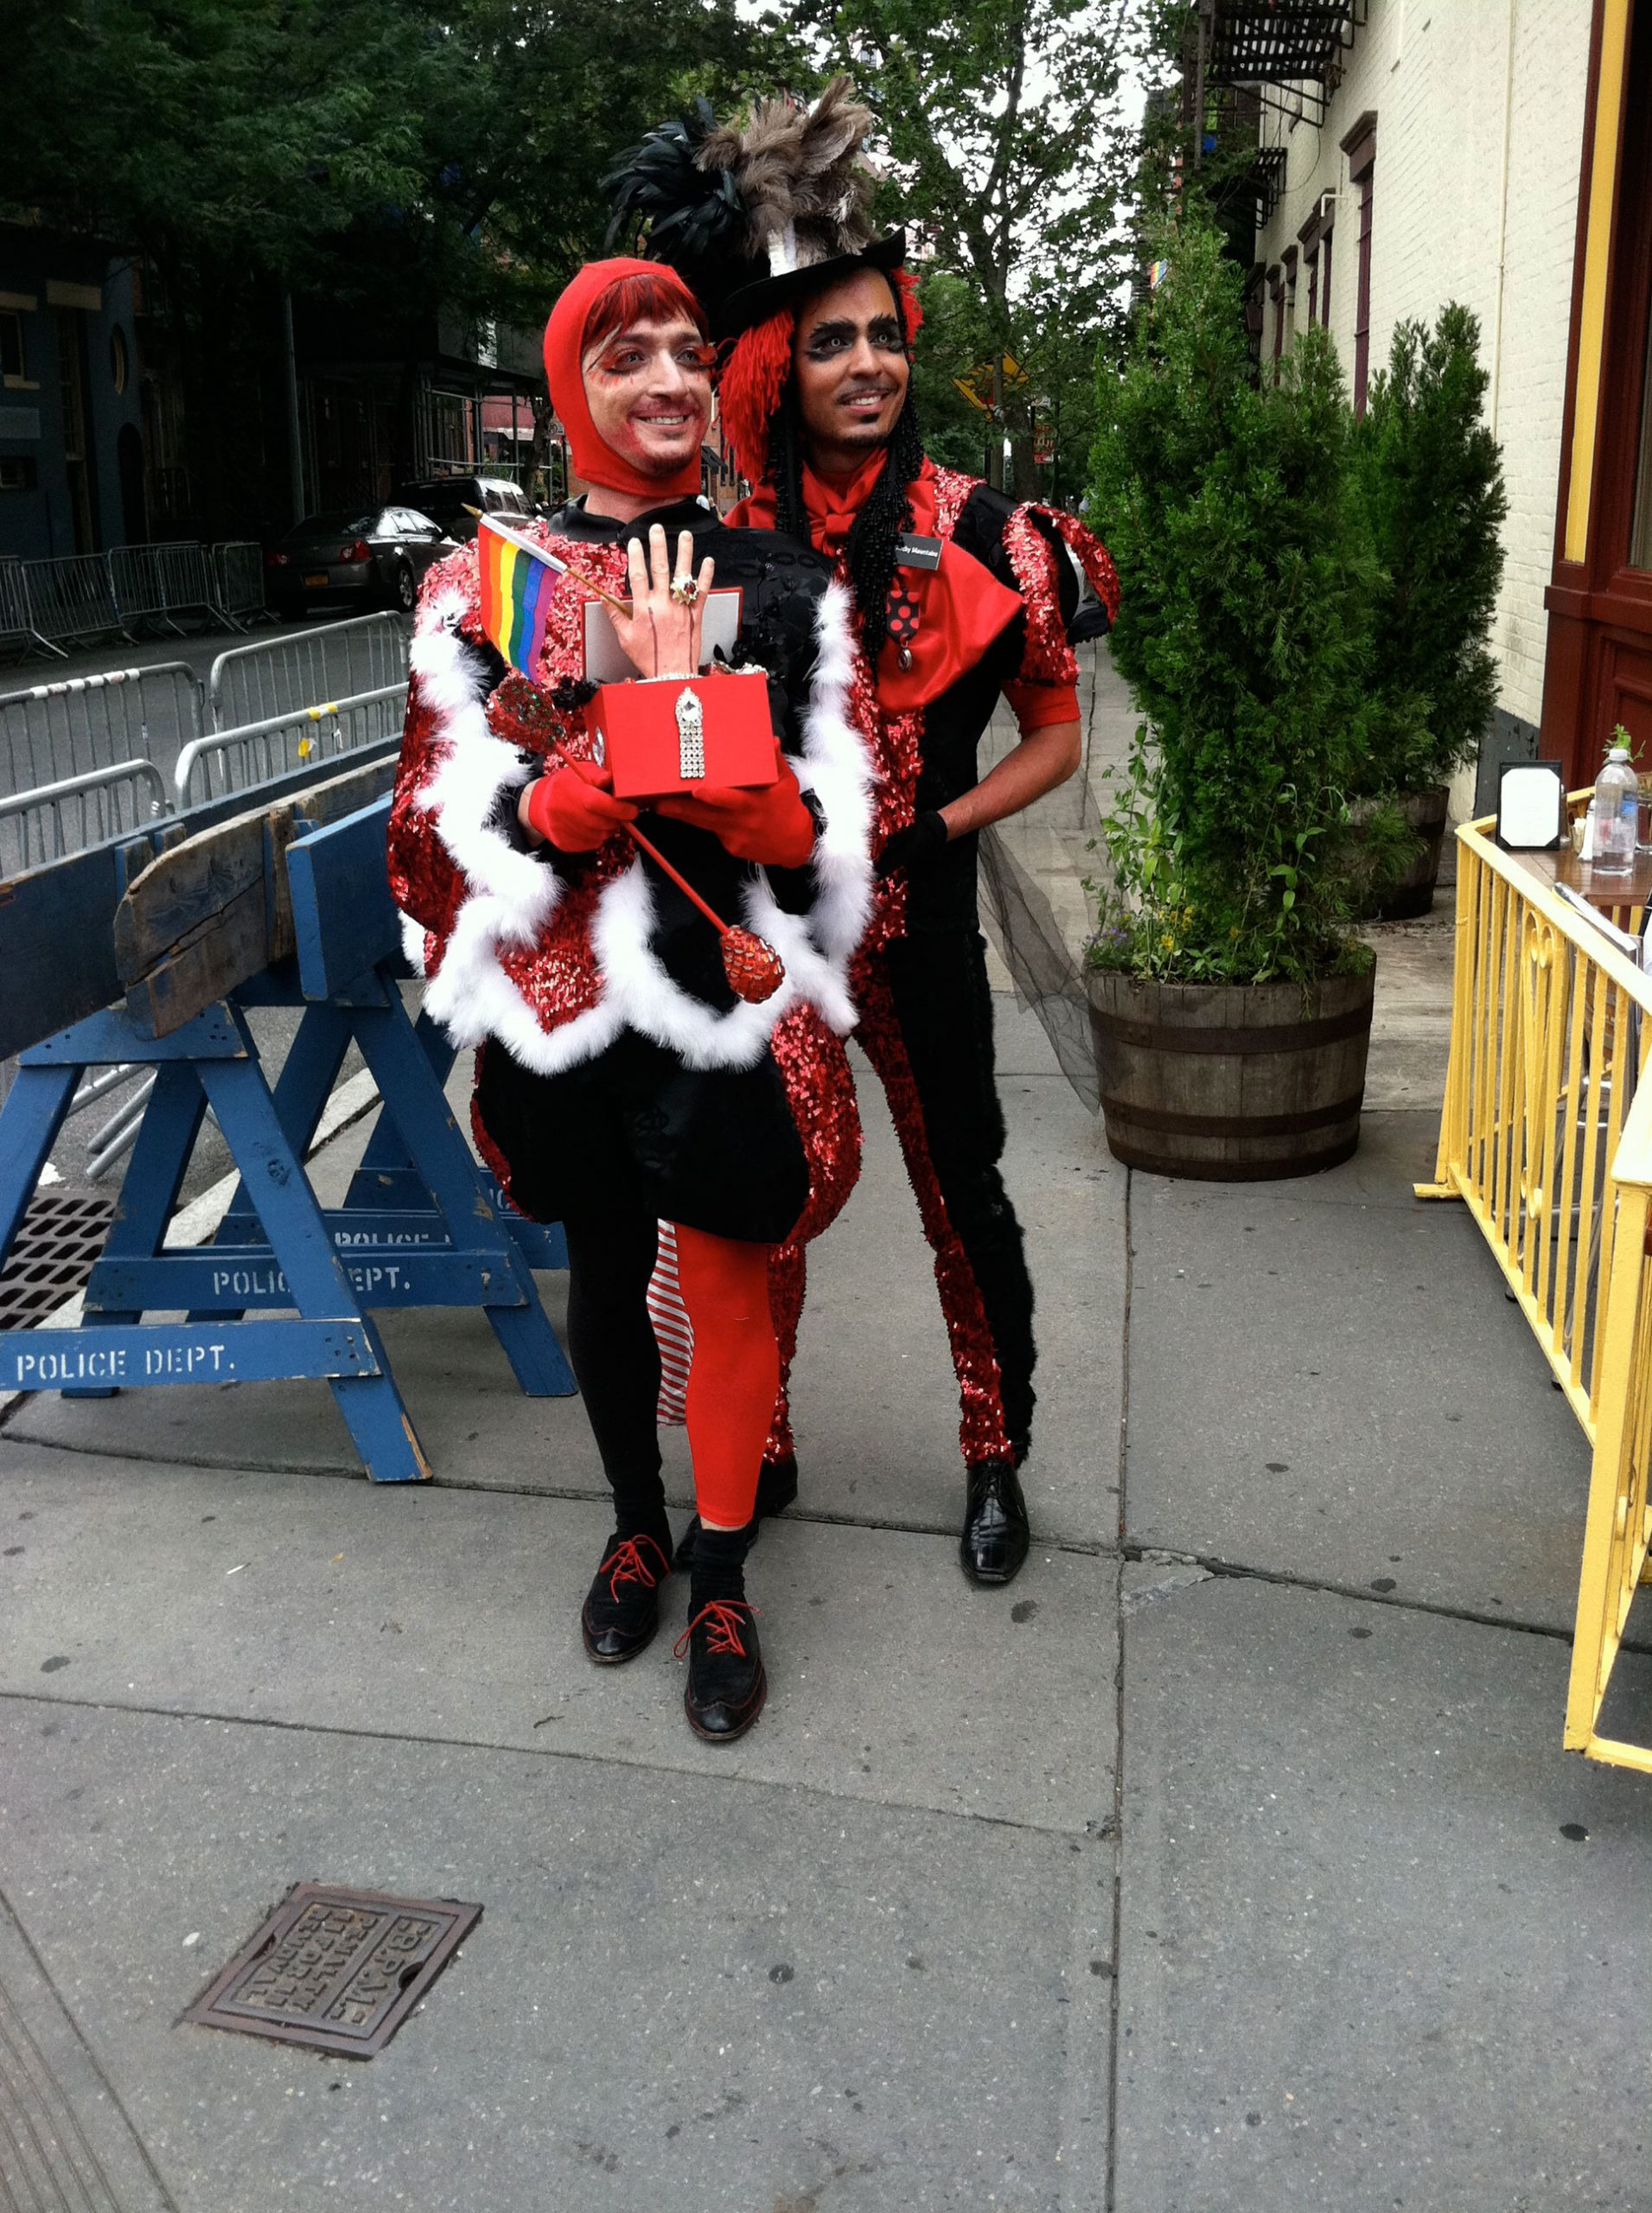 two men in red costumes